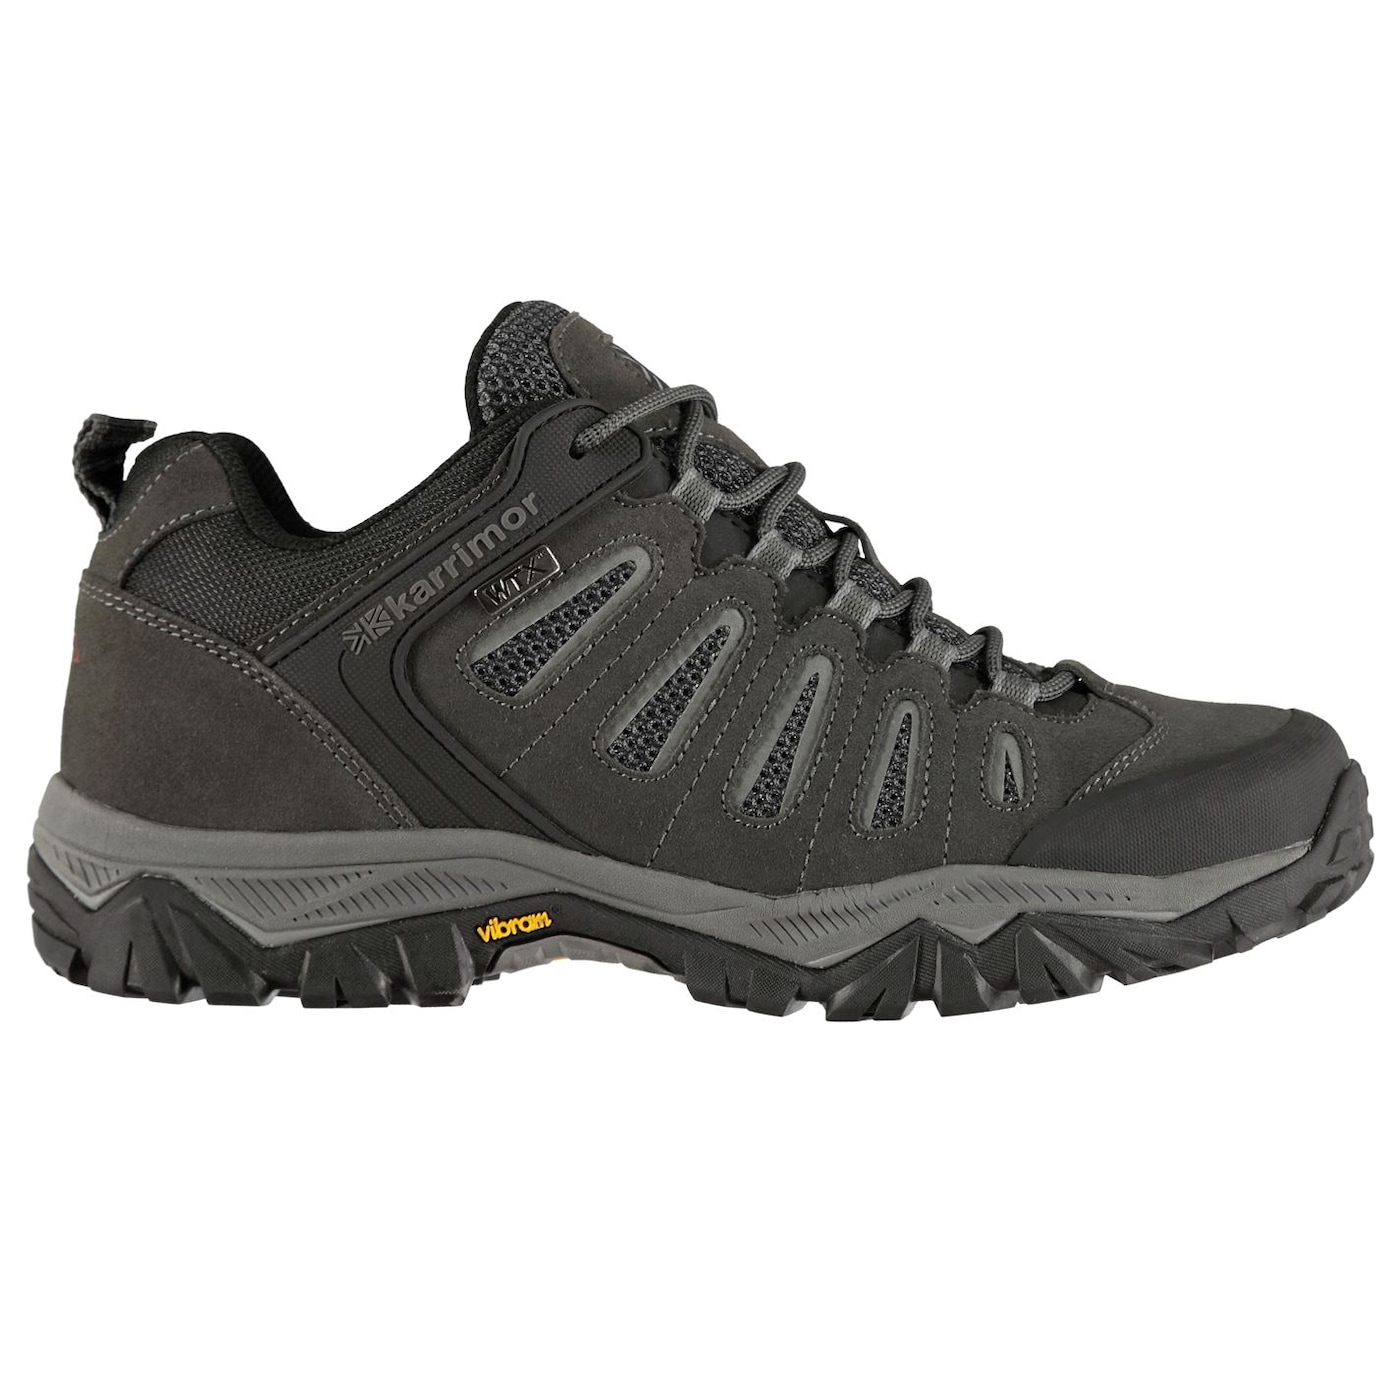 Karrimor Wildcat Low Walking Shoes Mens